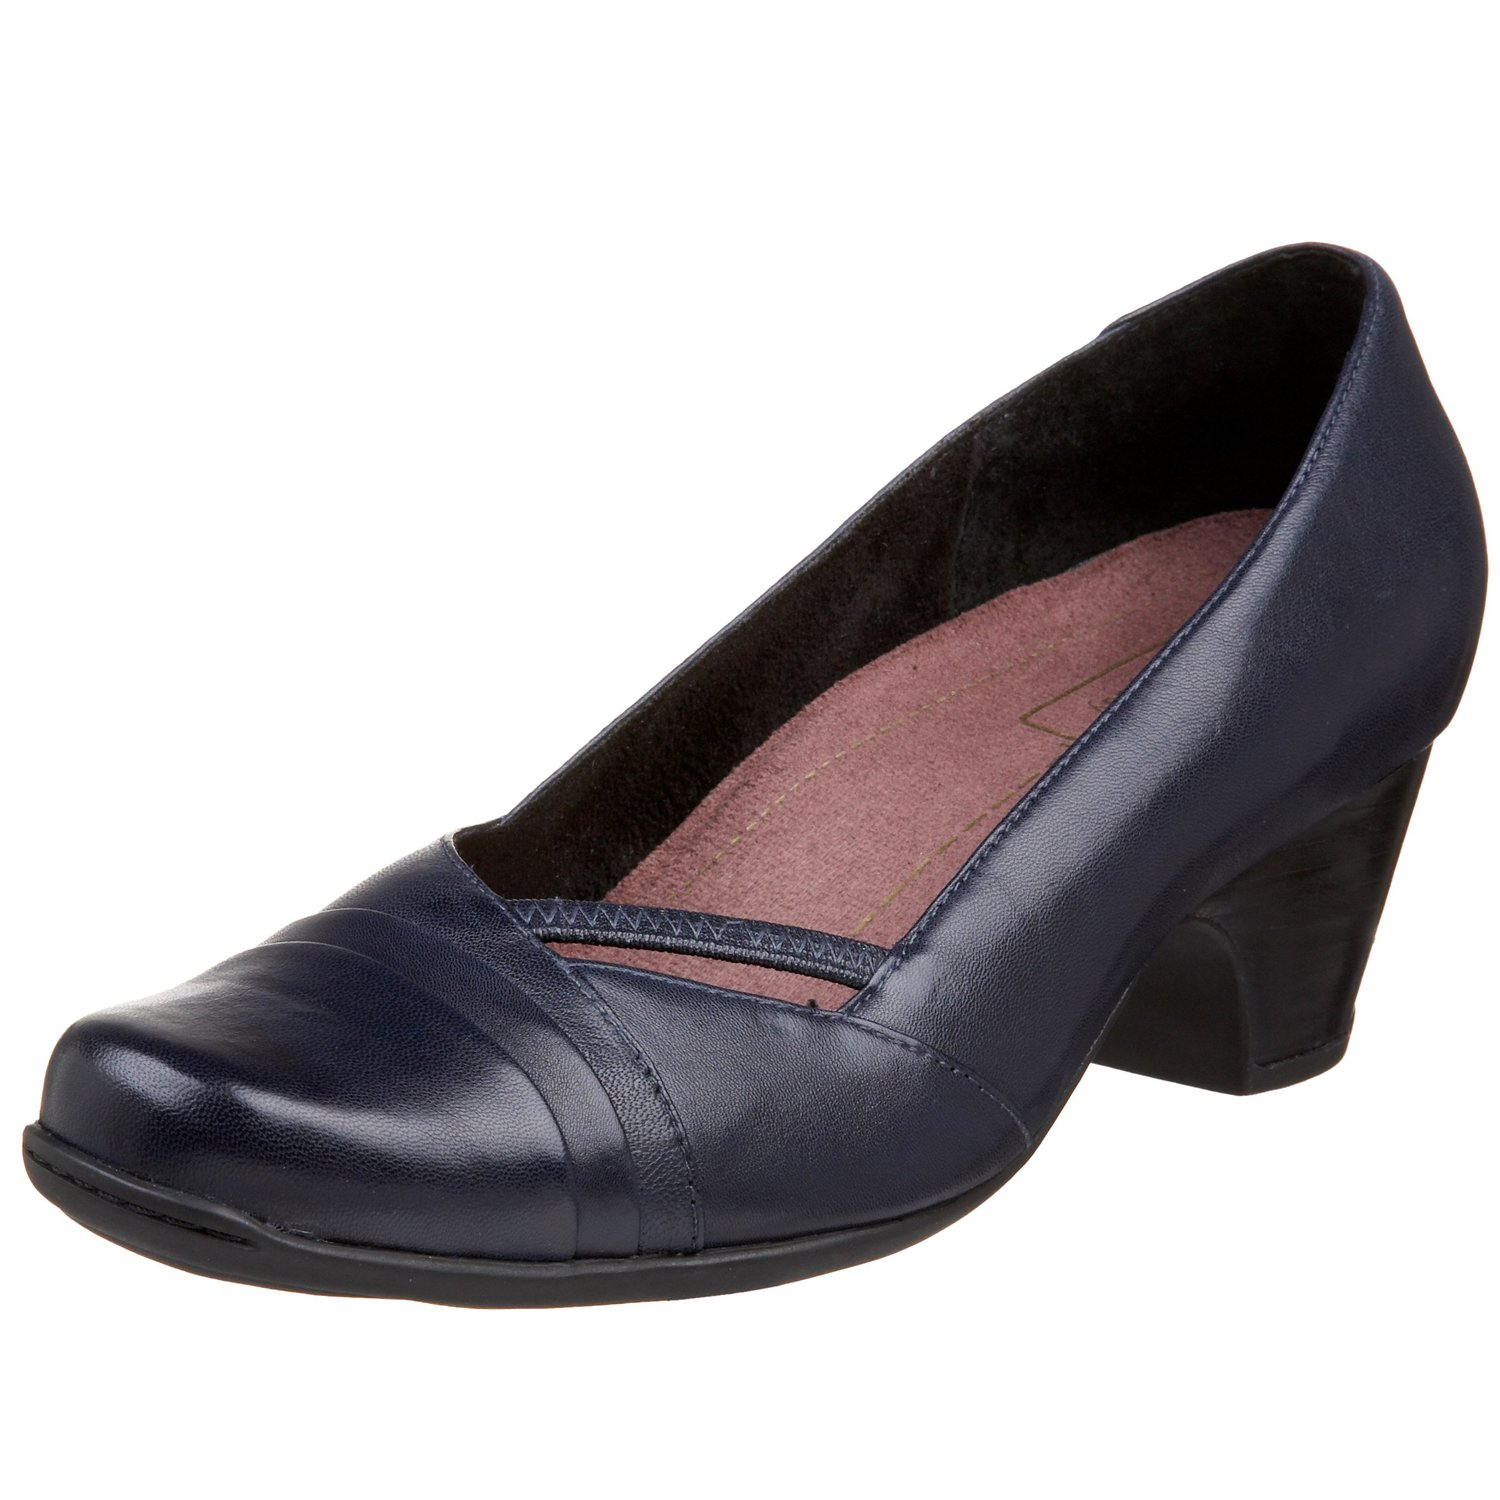 Clarks Shoes Black Pumps